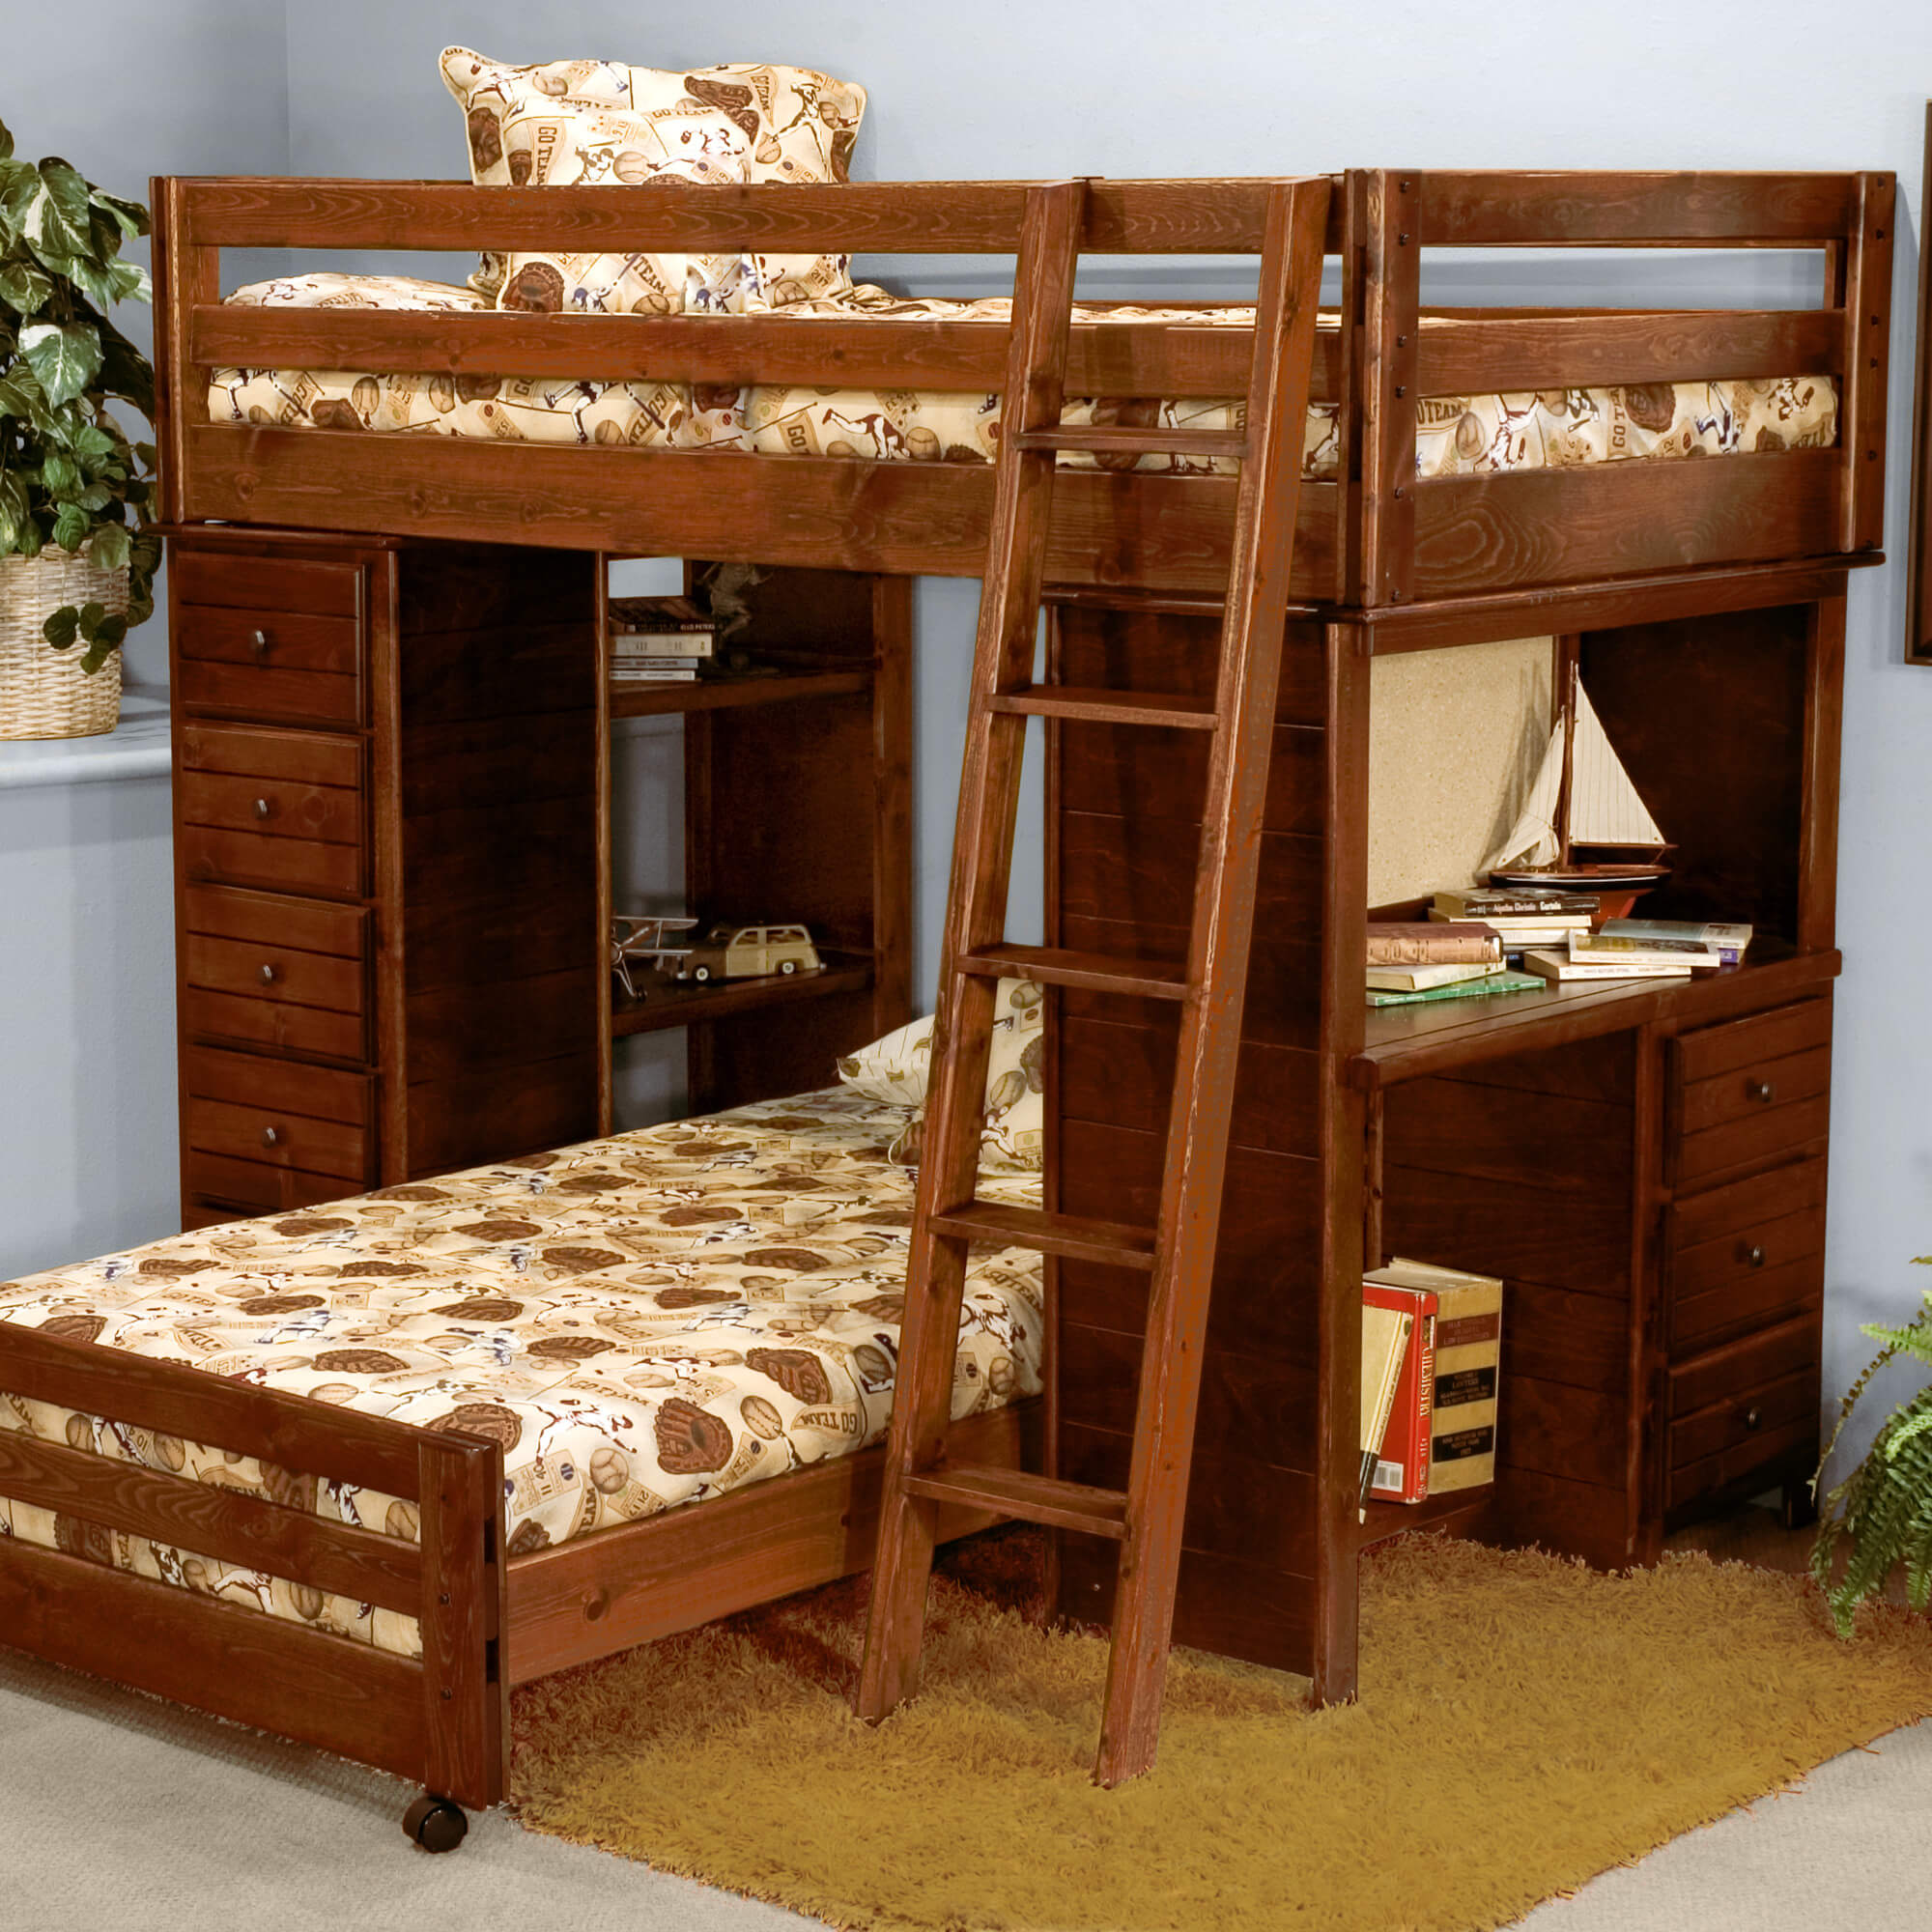 furniture childrens last beds loft collections the made to bed house low children s amish